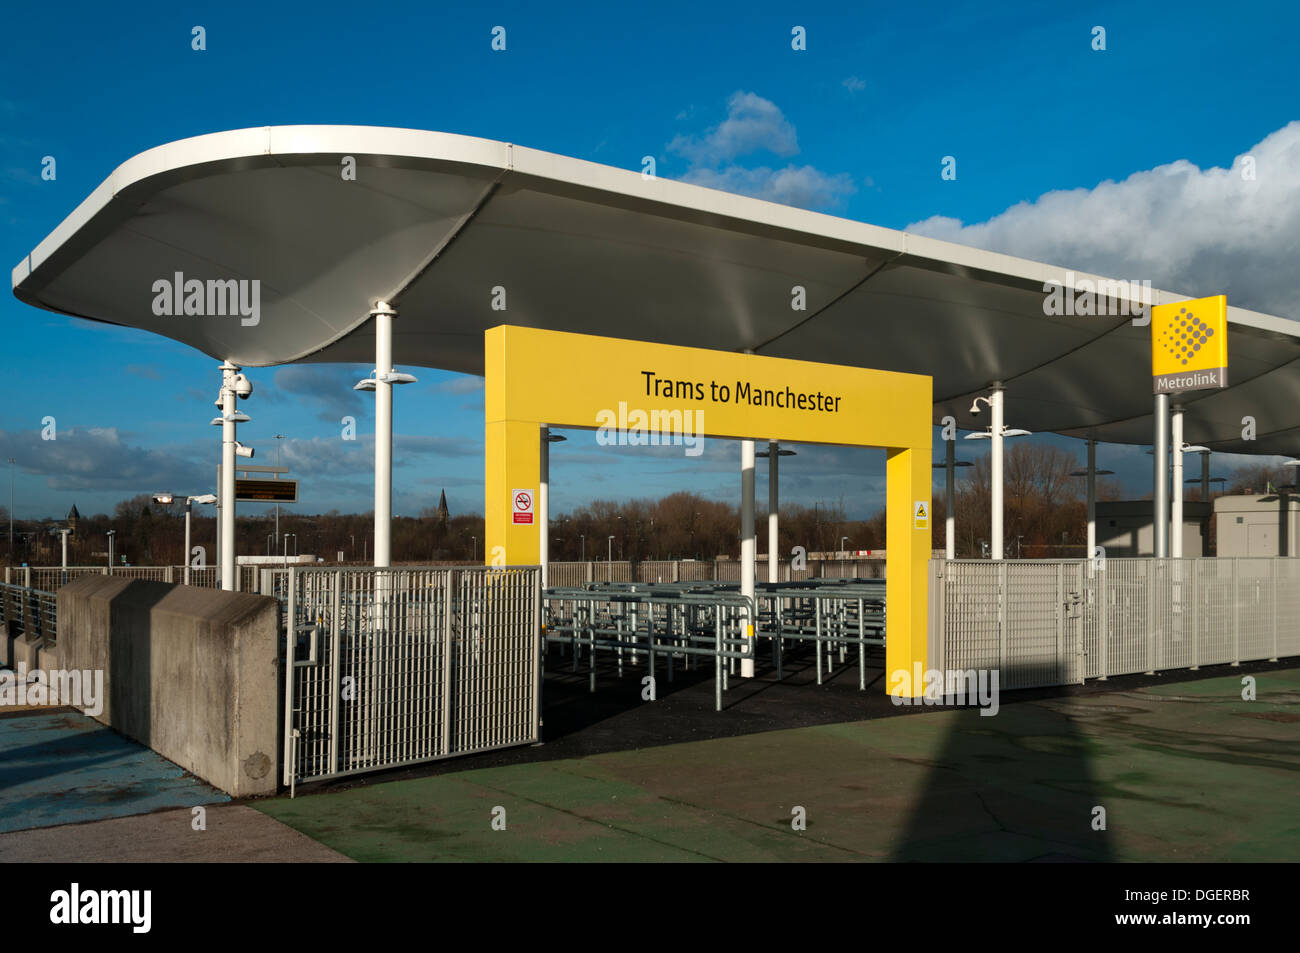 Match day turnstile exit of the Metrolink tram stop at the Etihad Campus, Eastlands, Manchester, England, UK - Stock Image